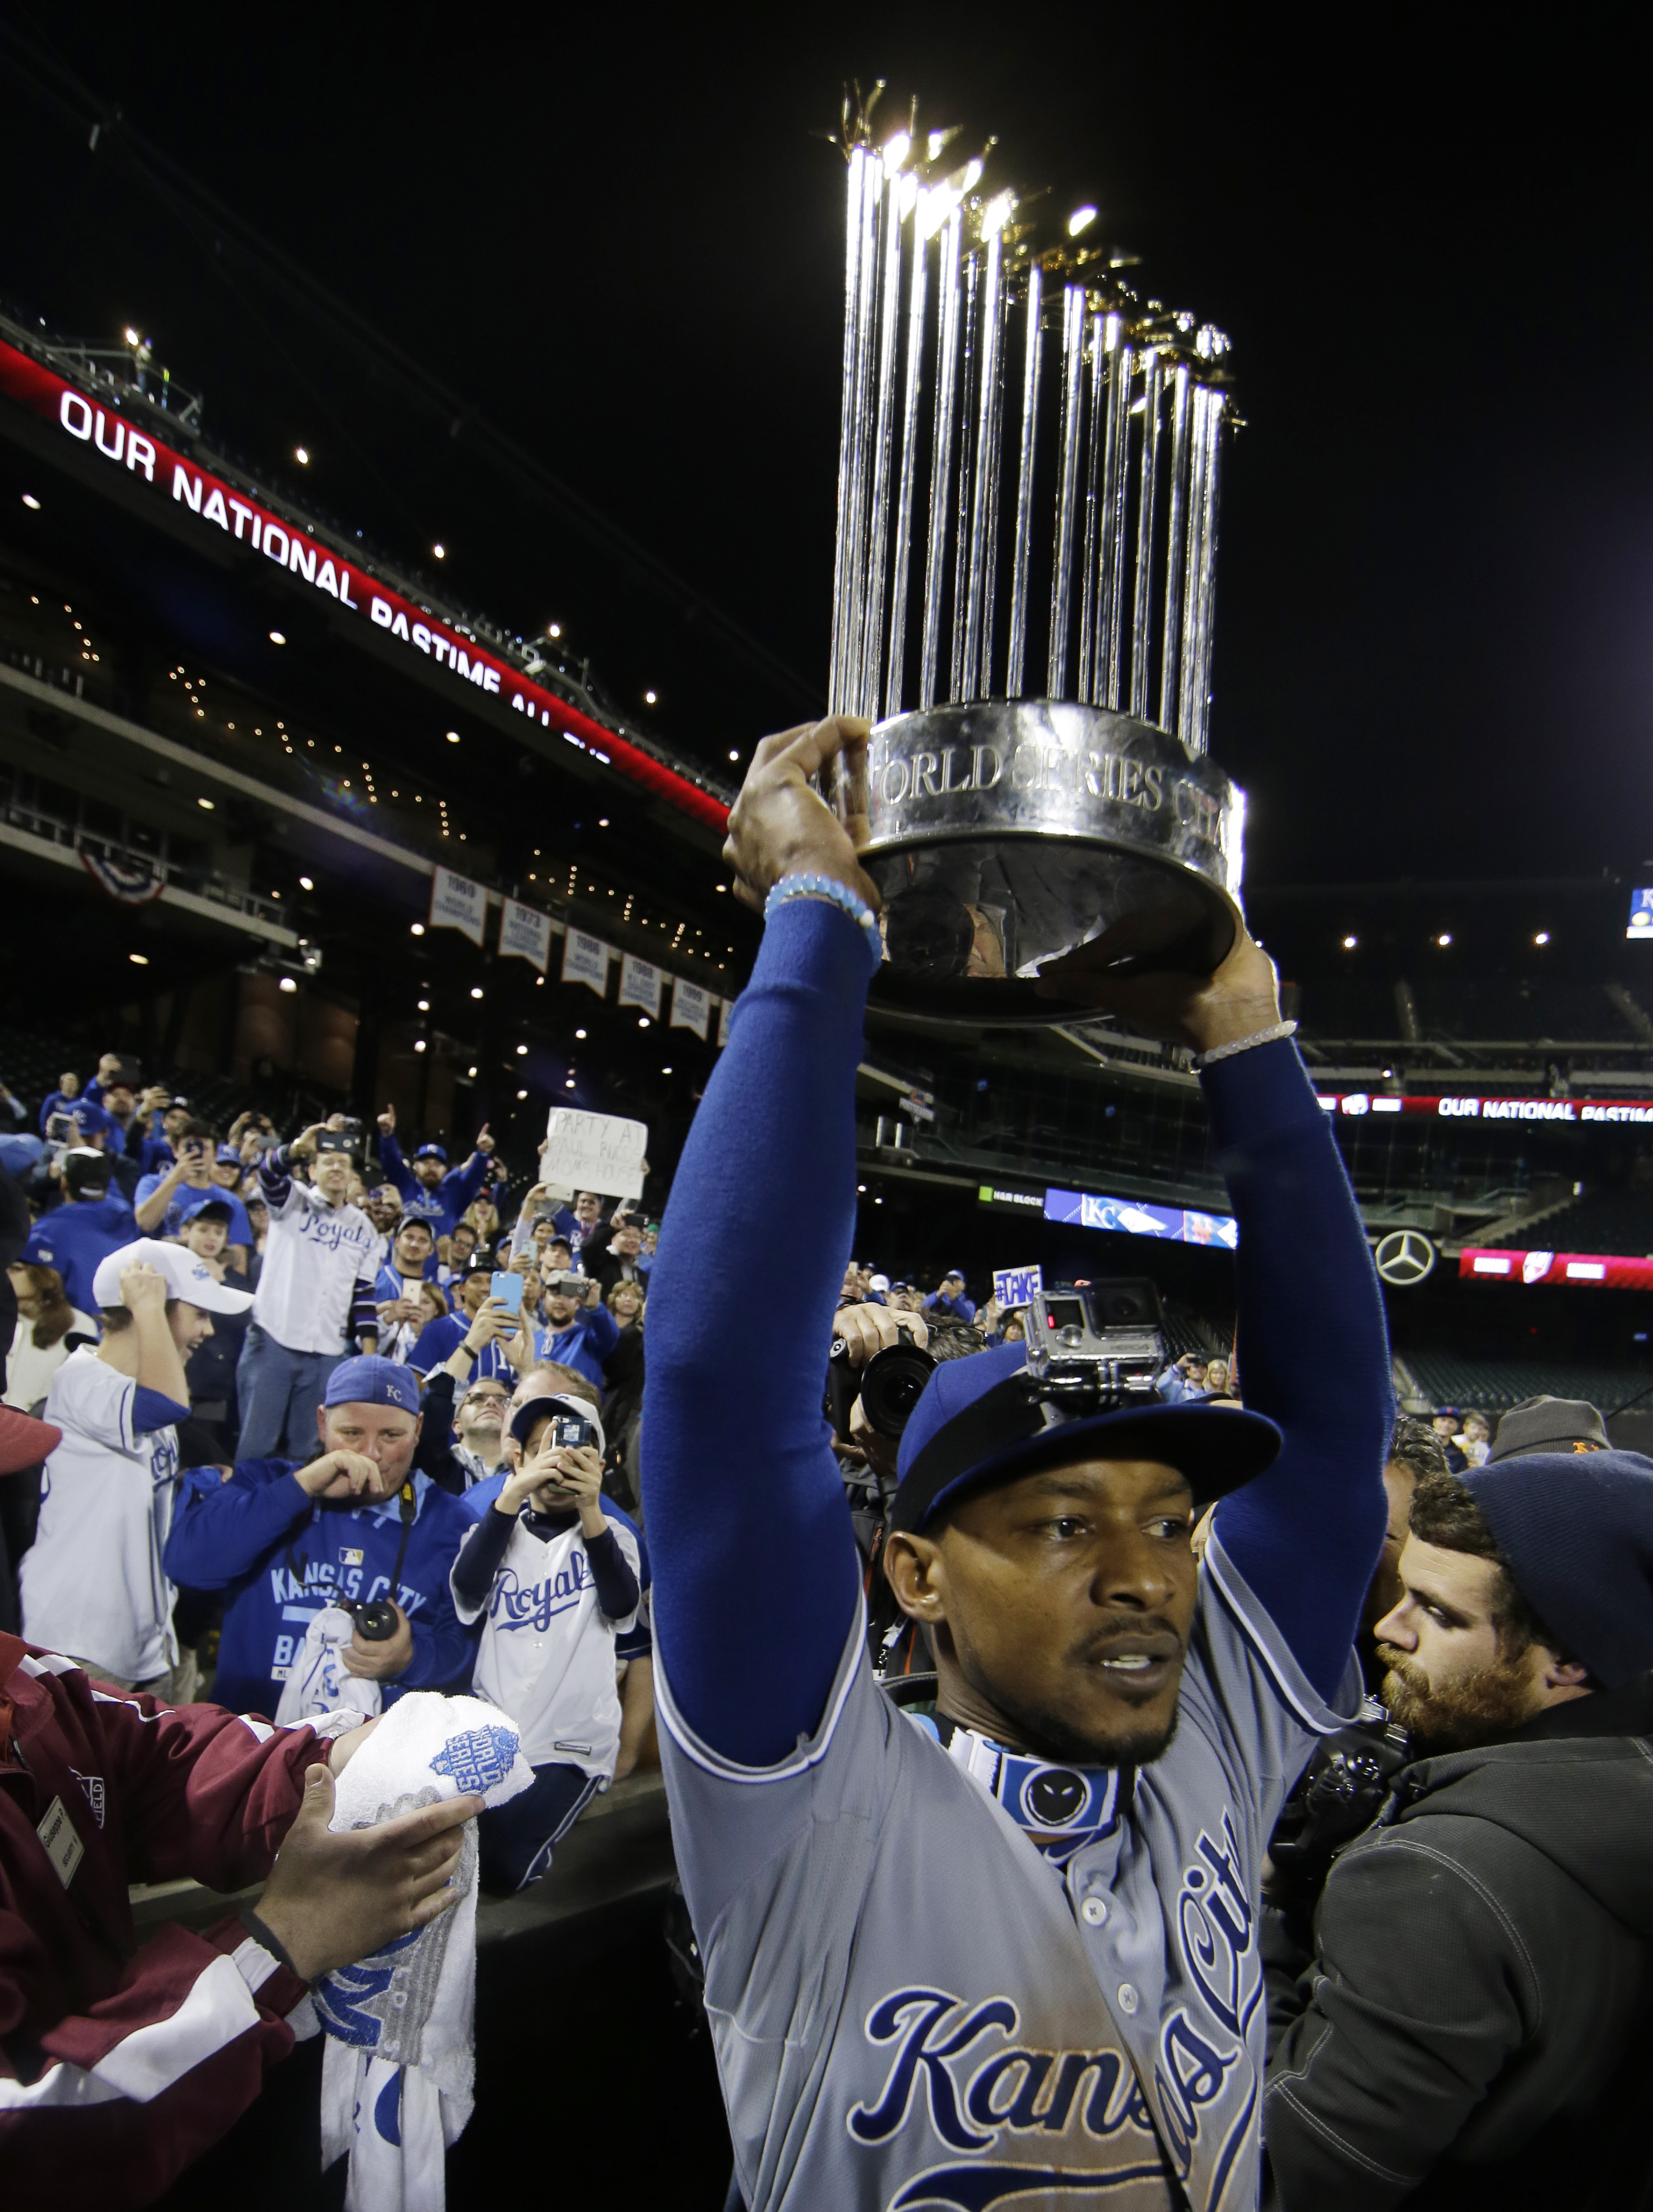 Kansas City Royals' Jarrod Dyson holds the World Series trophy after Game 5 of the Major League Baseball World Series against the New York Mets Monday, Nov. 2, 2015, in New York. The Royals won 7-2 to win the series. (AP Photo/Matt Slocum)